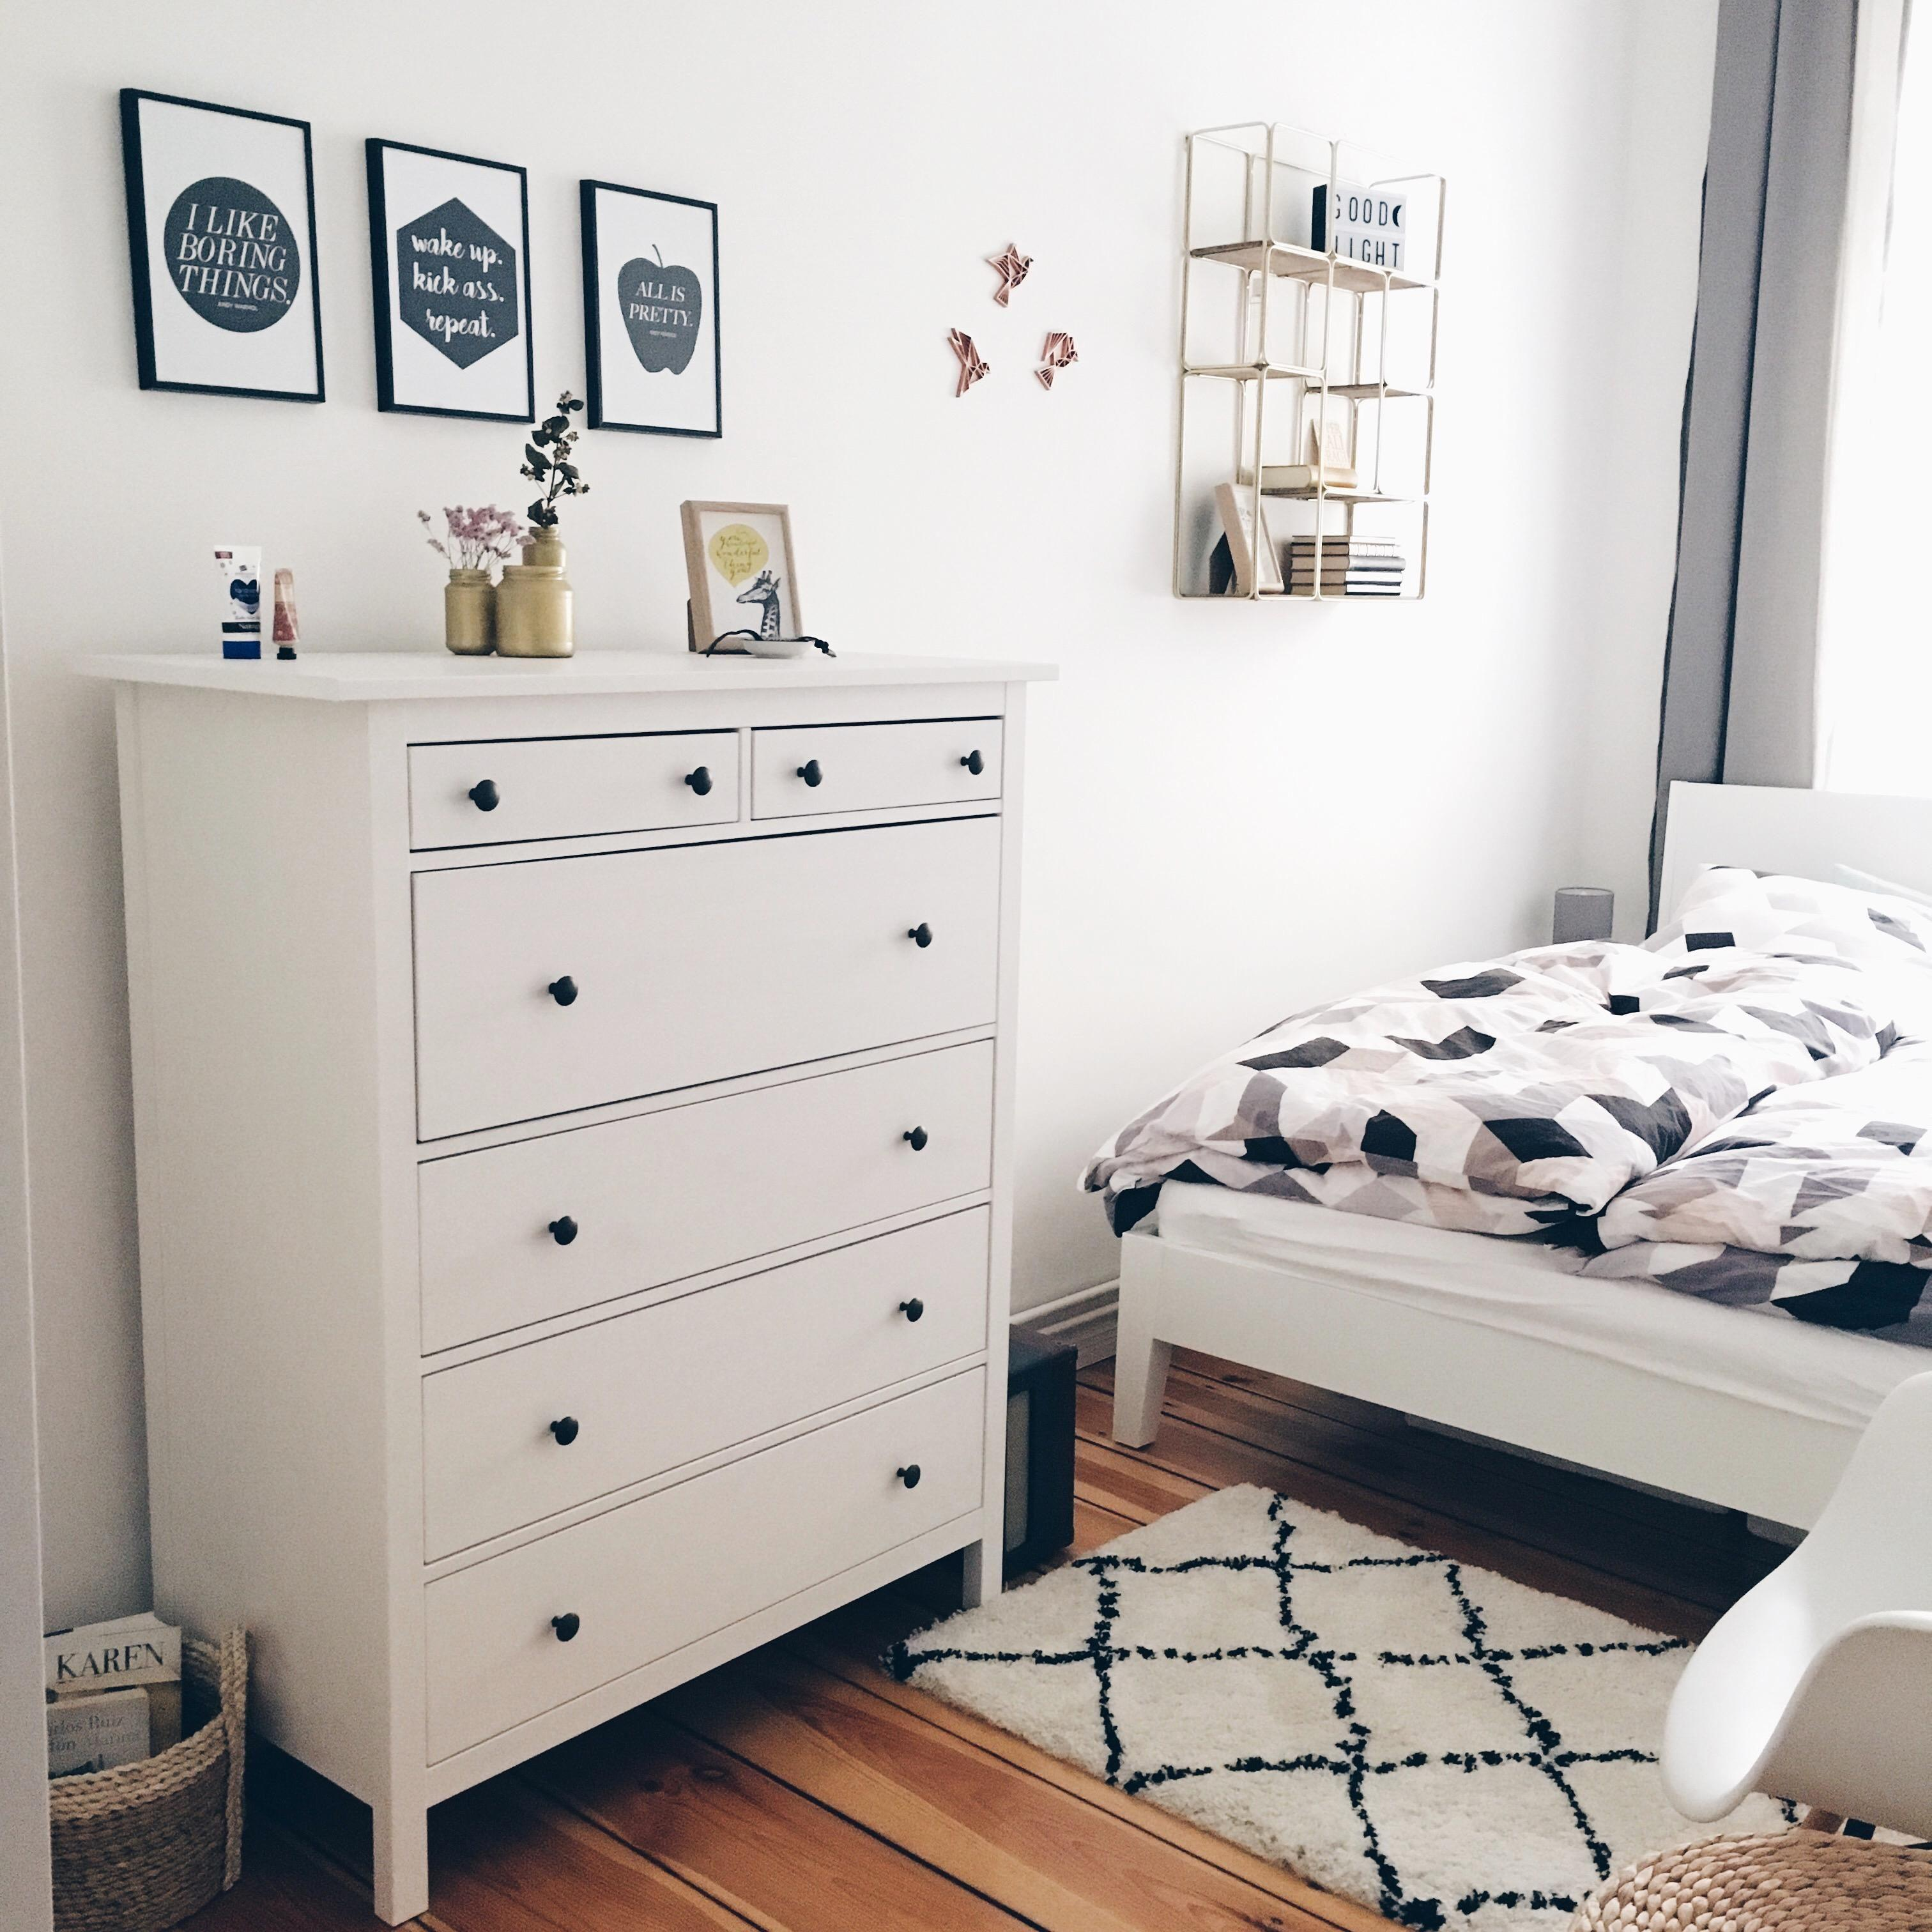 Happy Place <3 #homestory #schlafzimmer #ikea #altbau #hygge #bett #scandi